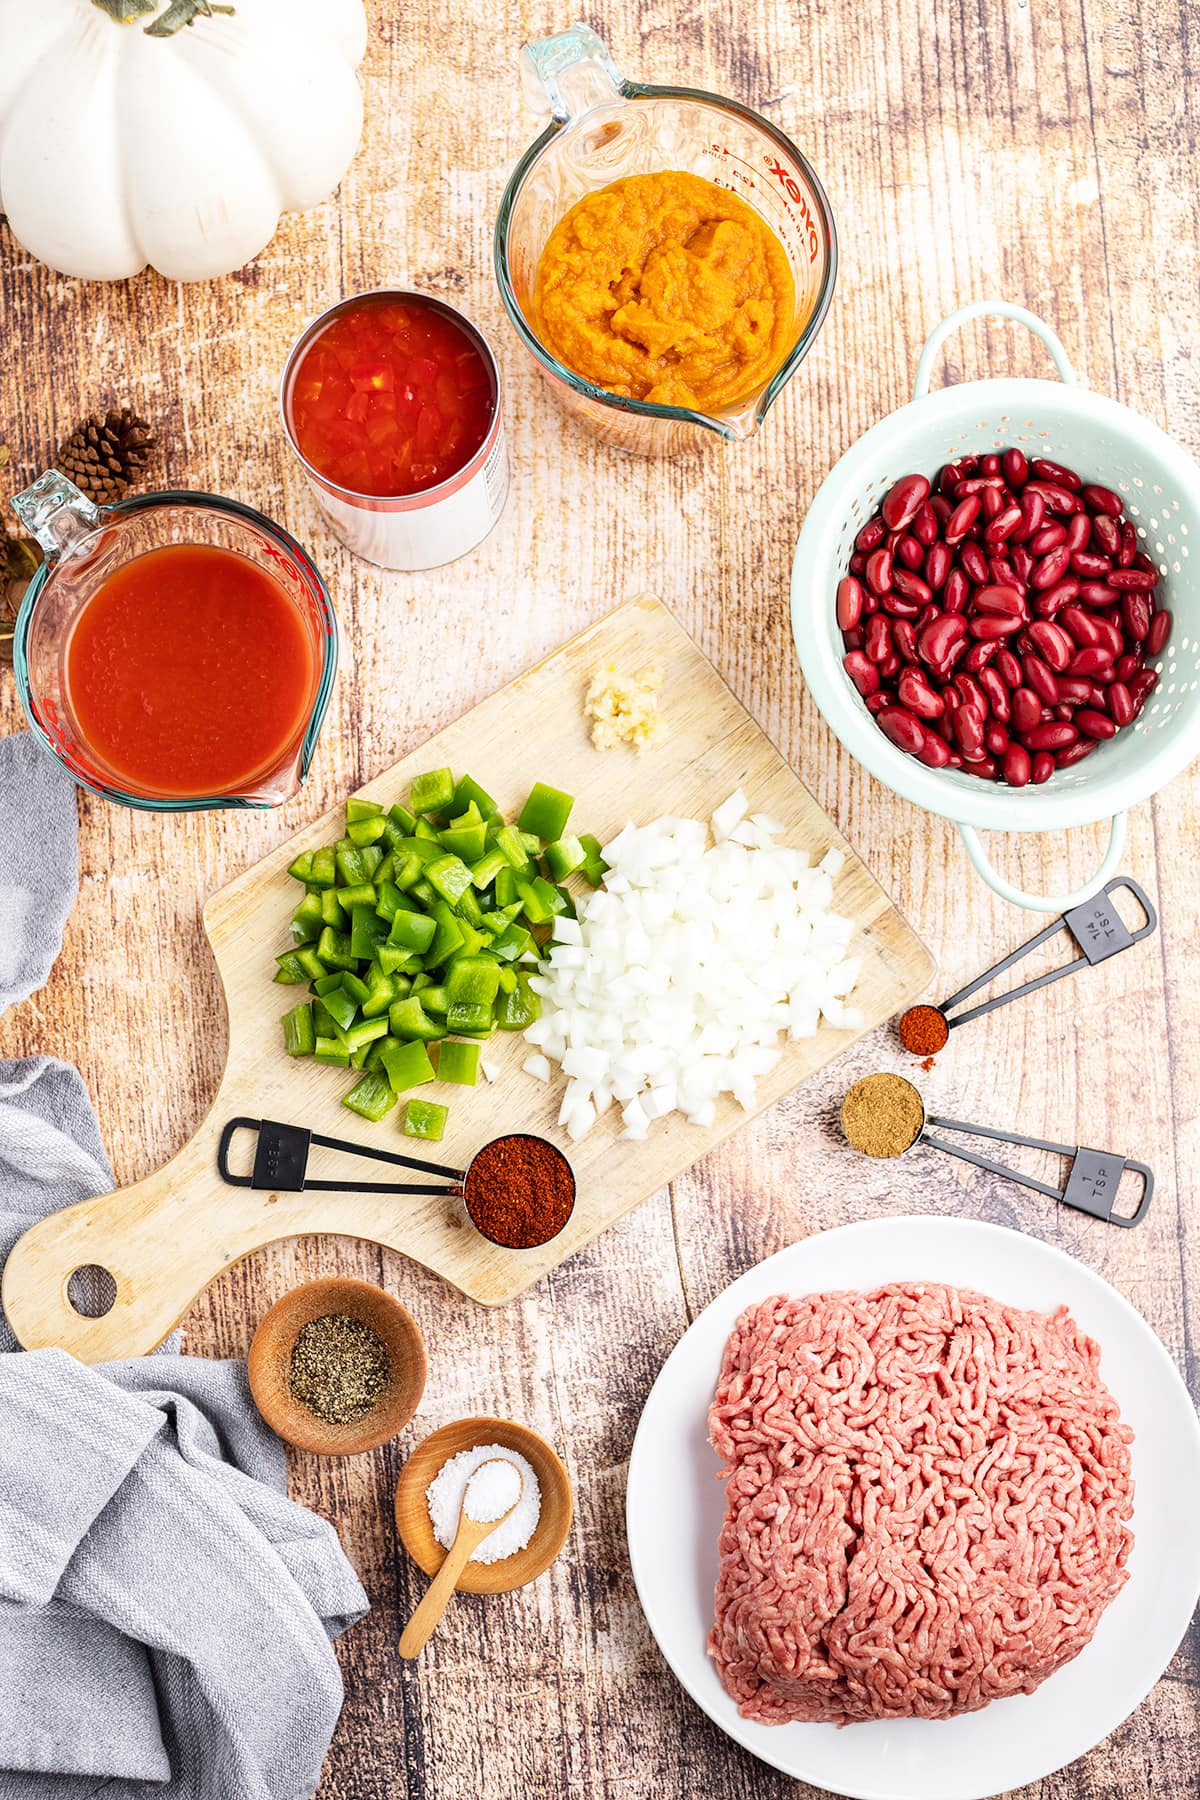 The ingredients needed to make pumpkin chili.